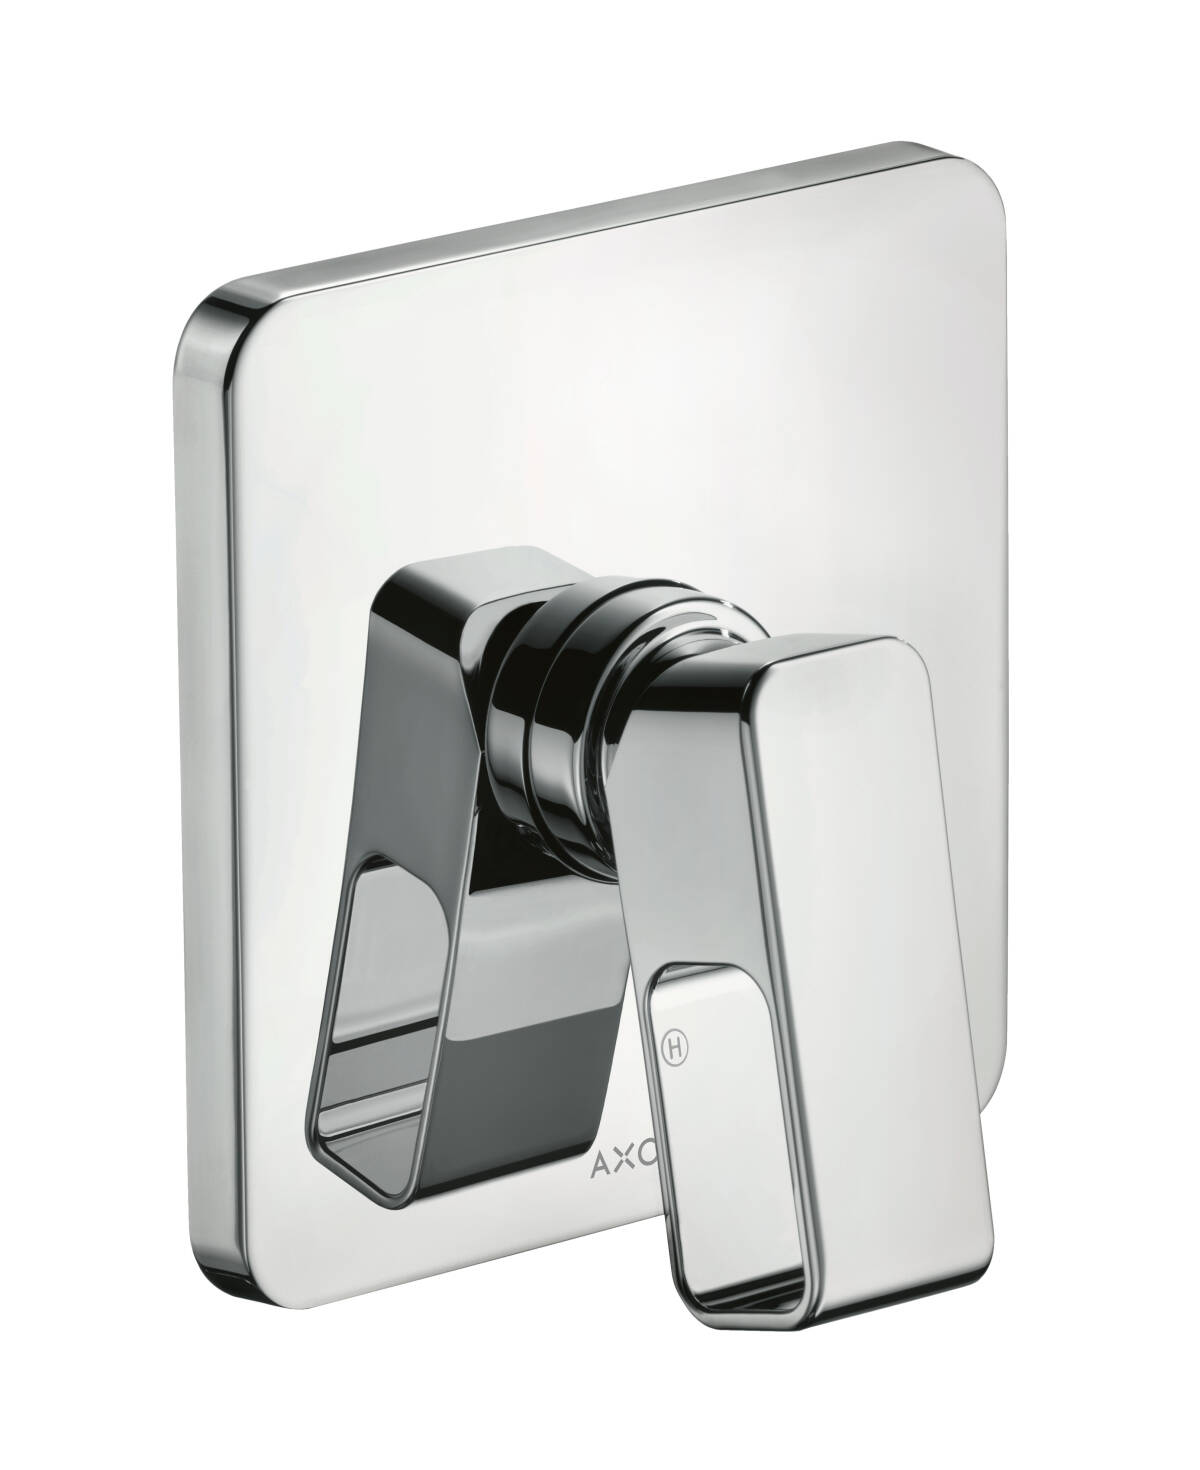 Single lever shower mixer for concealed installation, Polished Chrome, 11625020